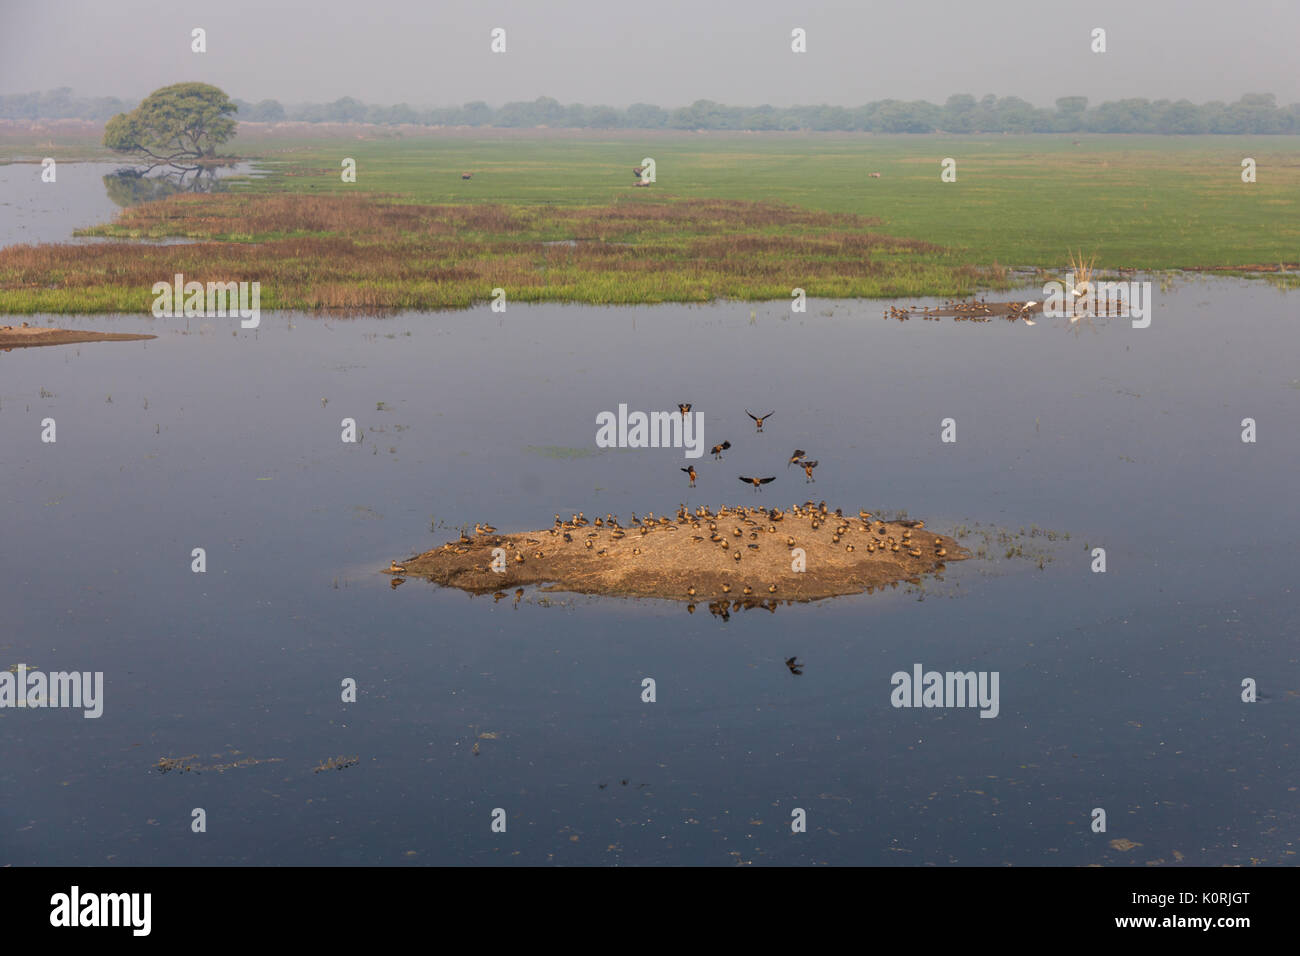 The lesser whistling duck (Dendrocygna javanica) at Bharatpur Bird Sanctuary - Stock Image